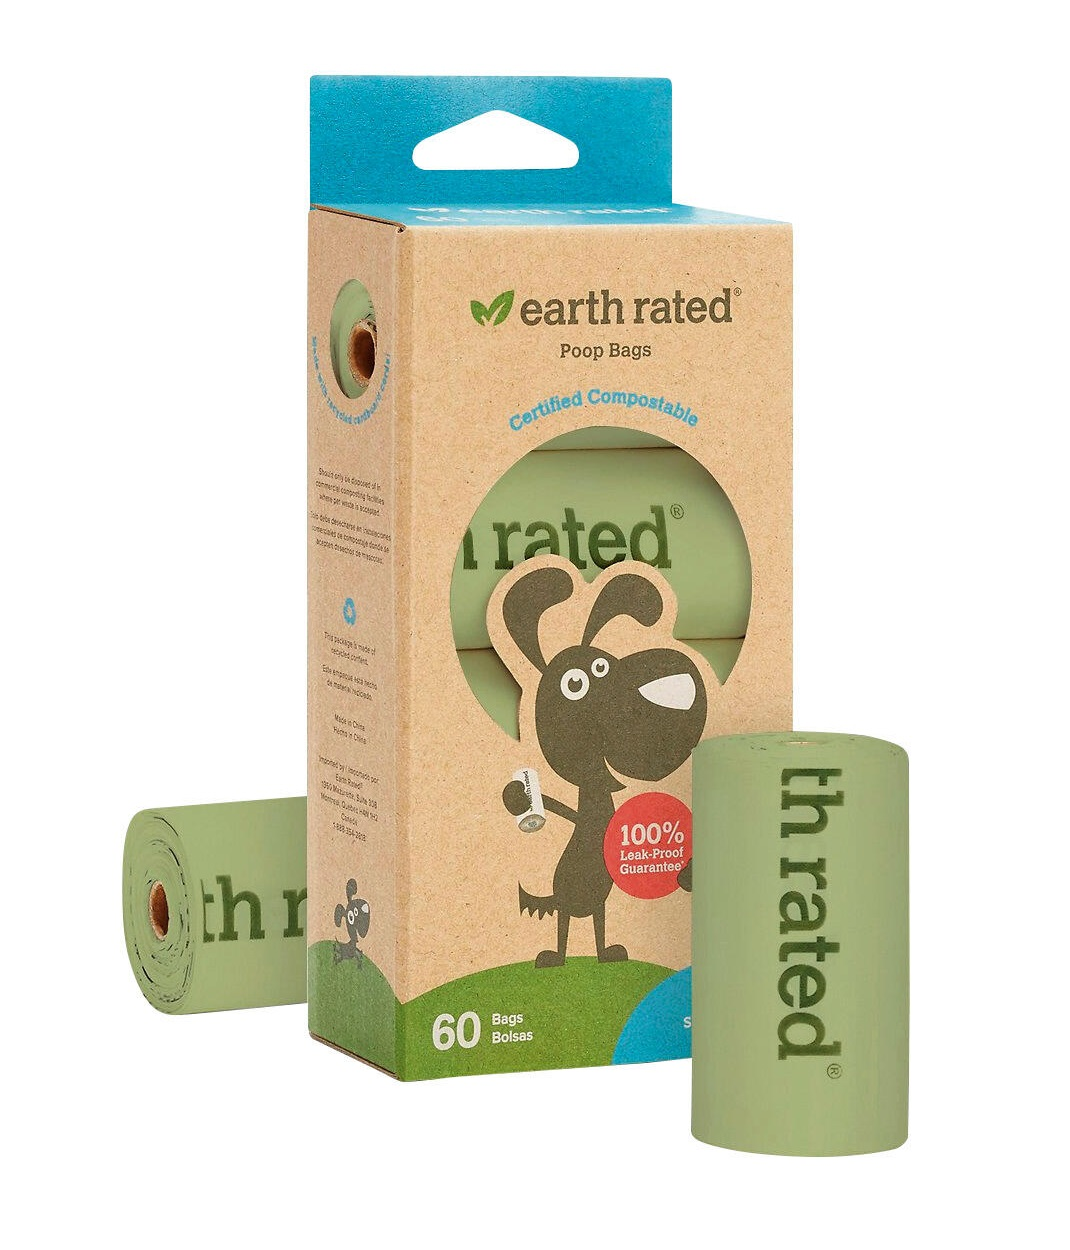 Earth Rated Poop Bags 60 count pack